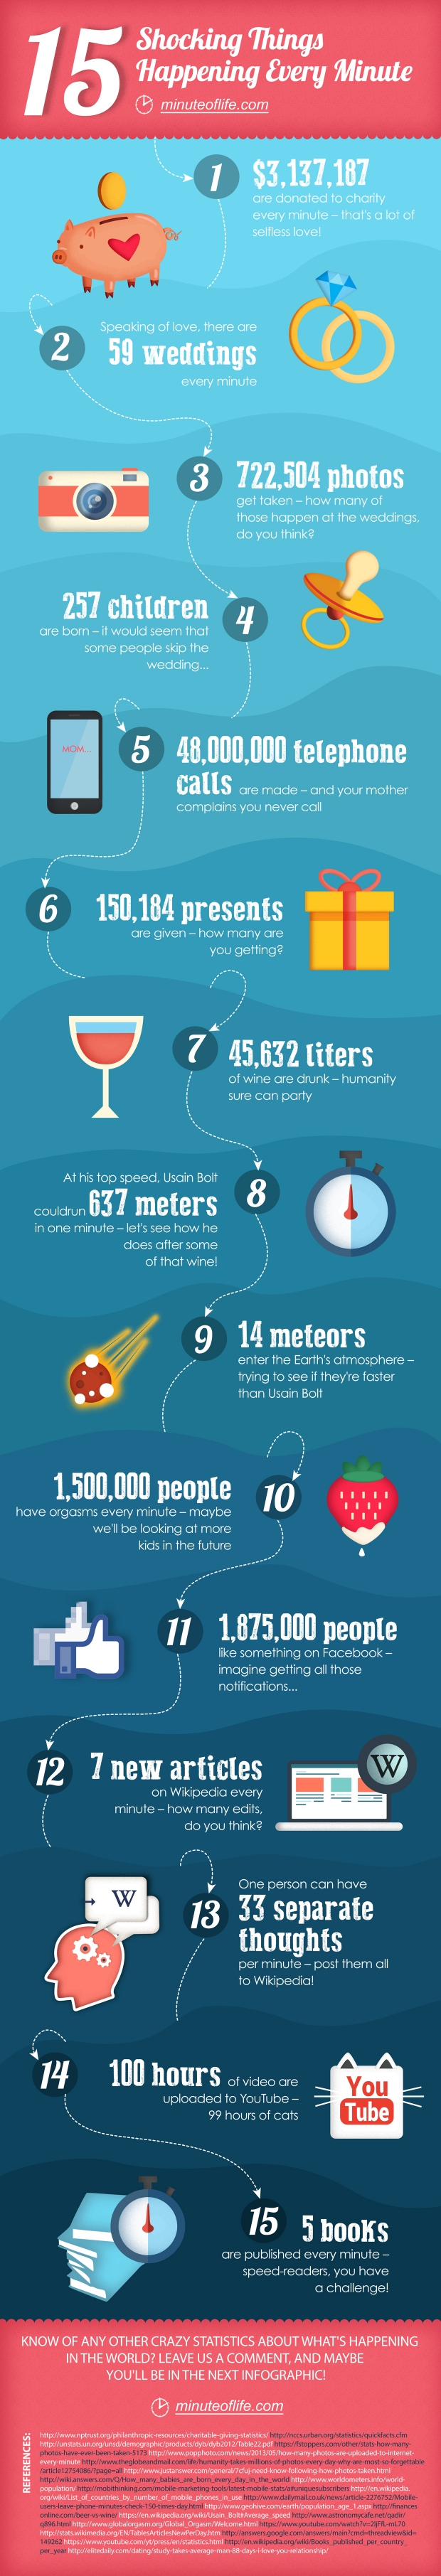 What_Happens_on_Earth_in_One_Minute